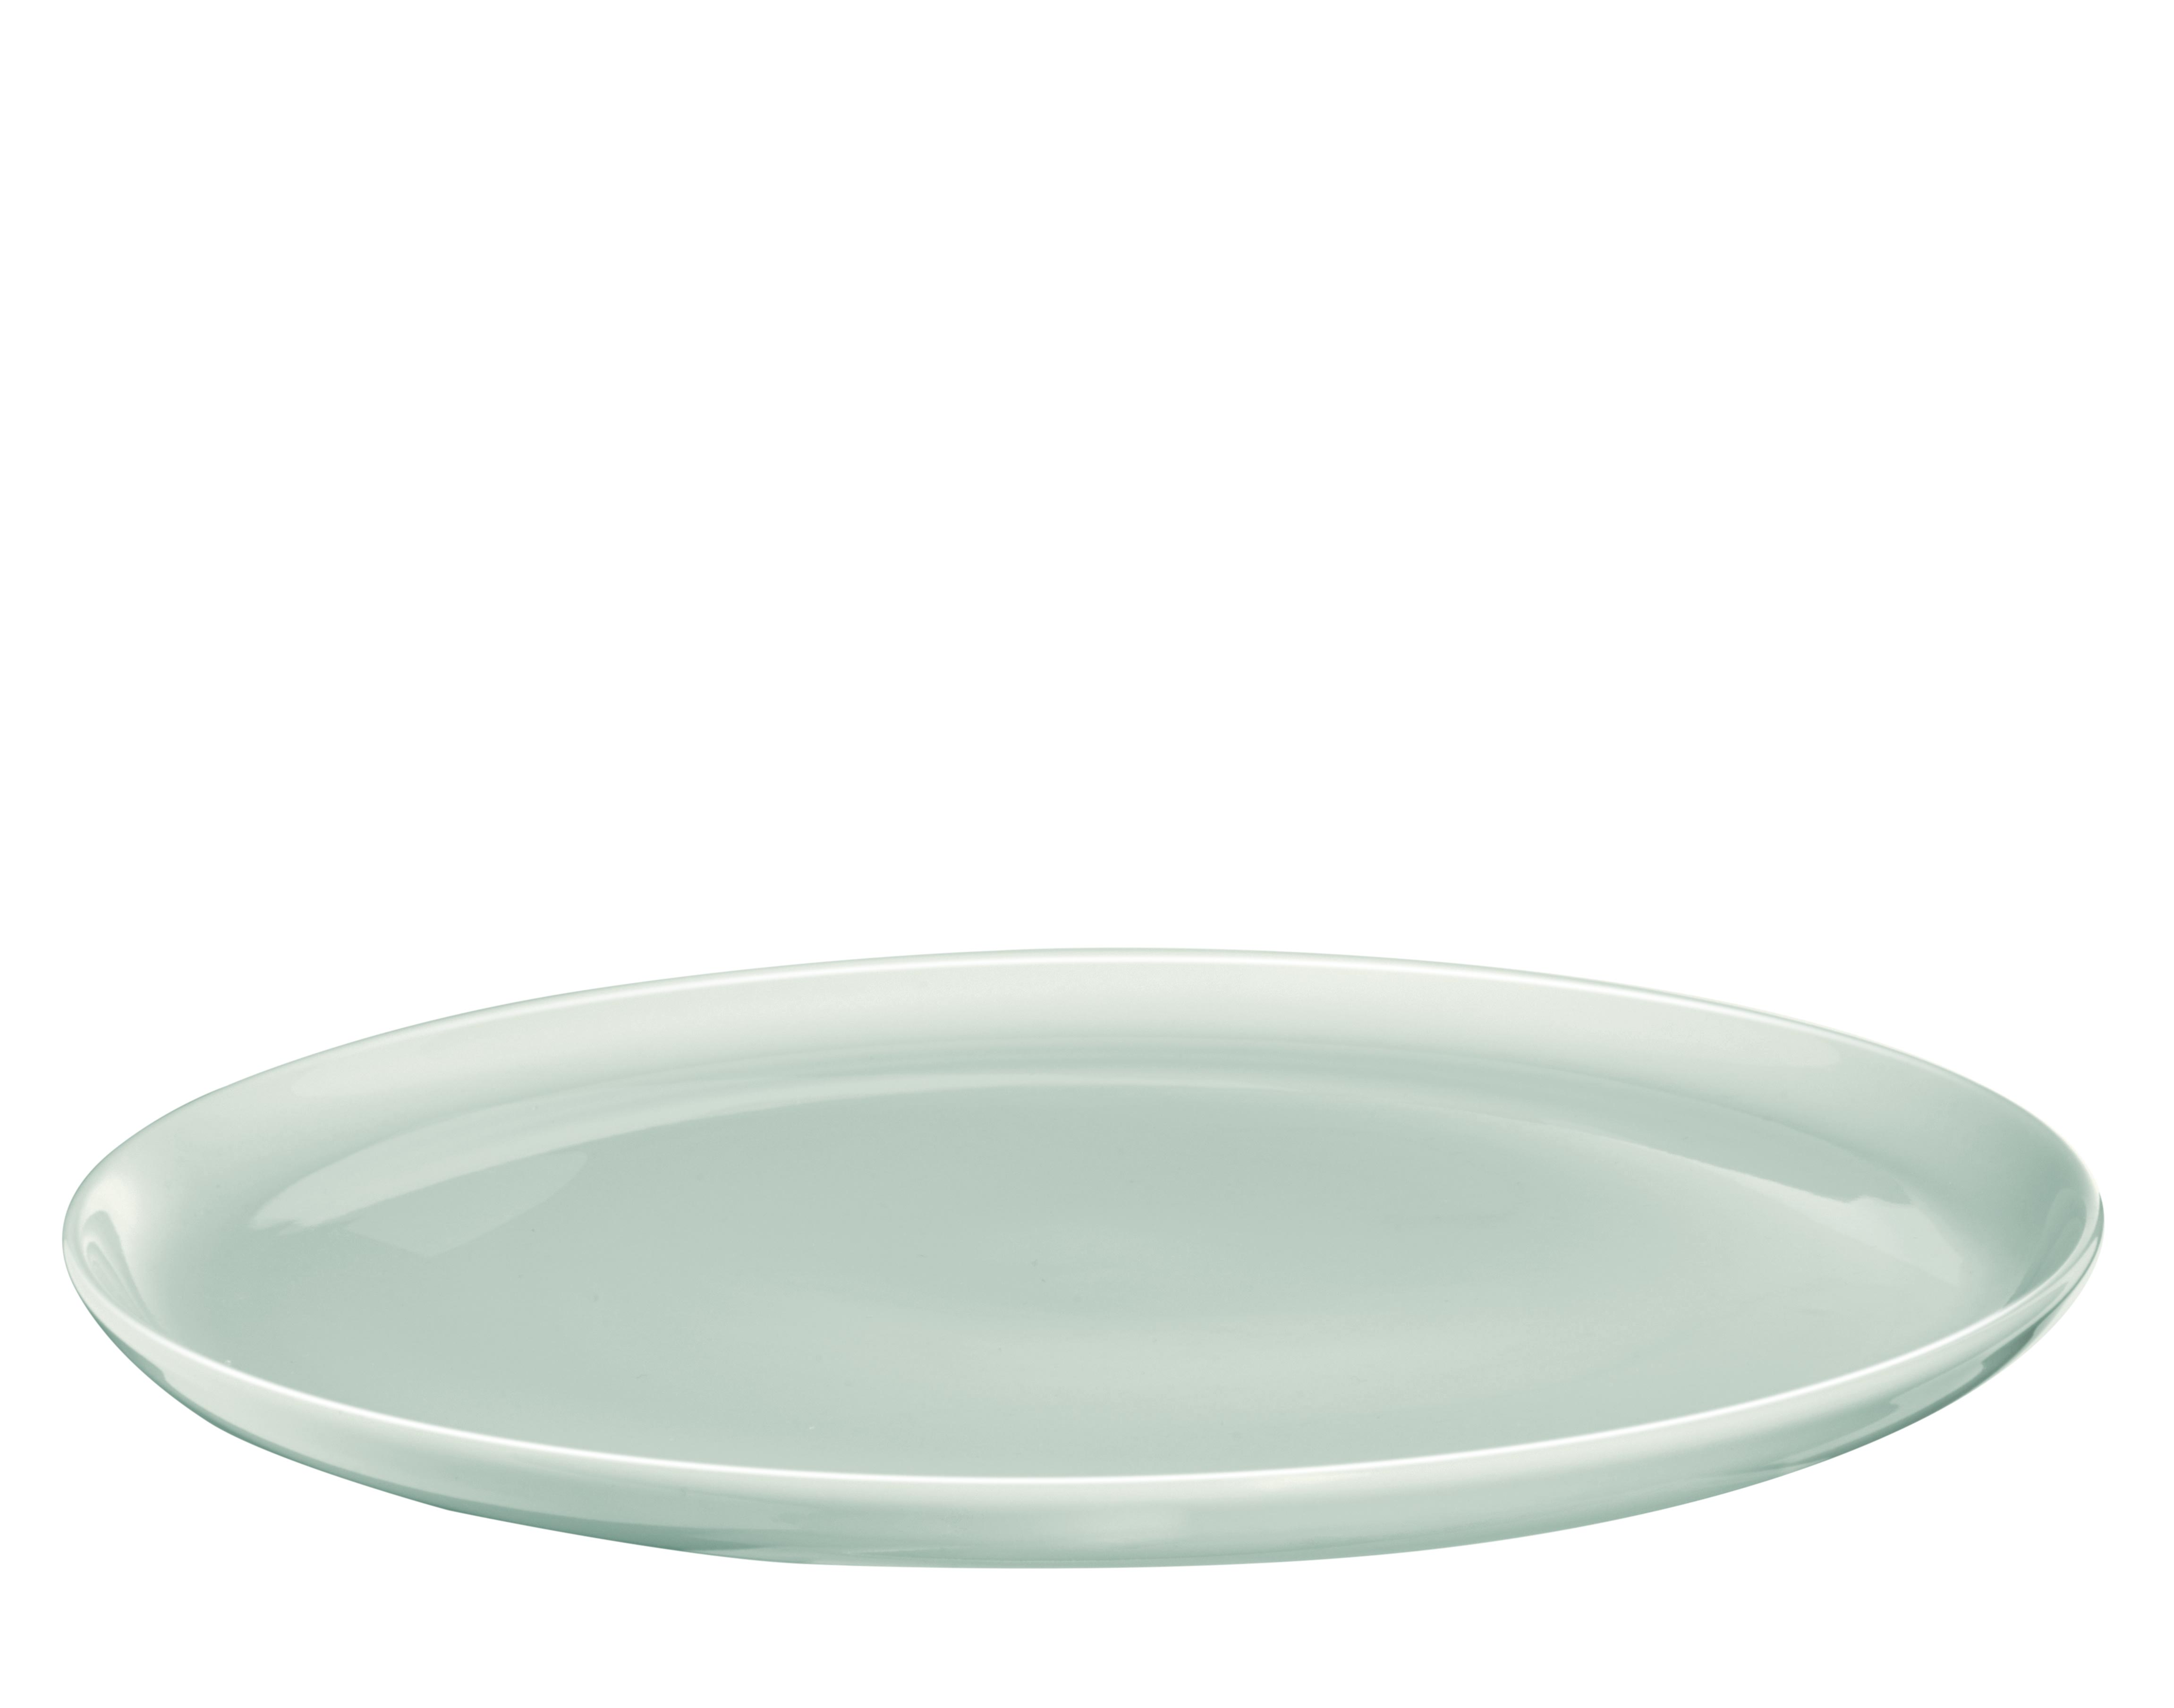 dinnerplate colibri plates dinnerware products home by asa the asa selection. Black Bedroom Furniture Sets. Home Design Ideas